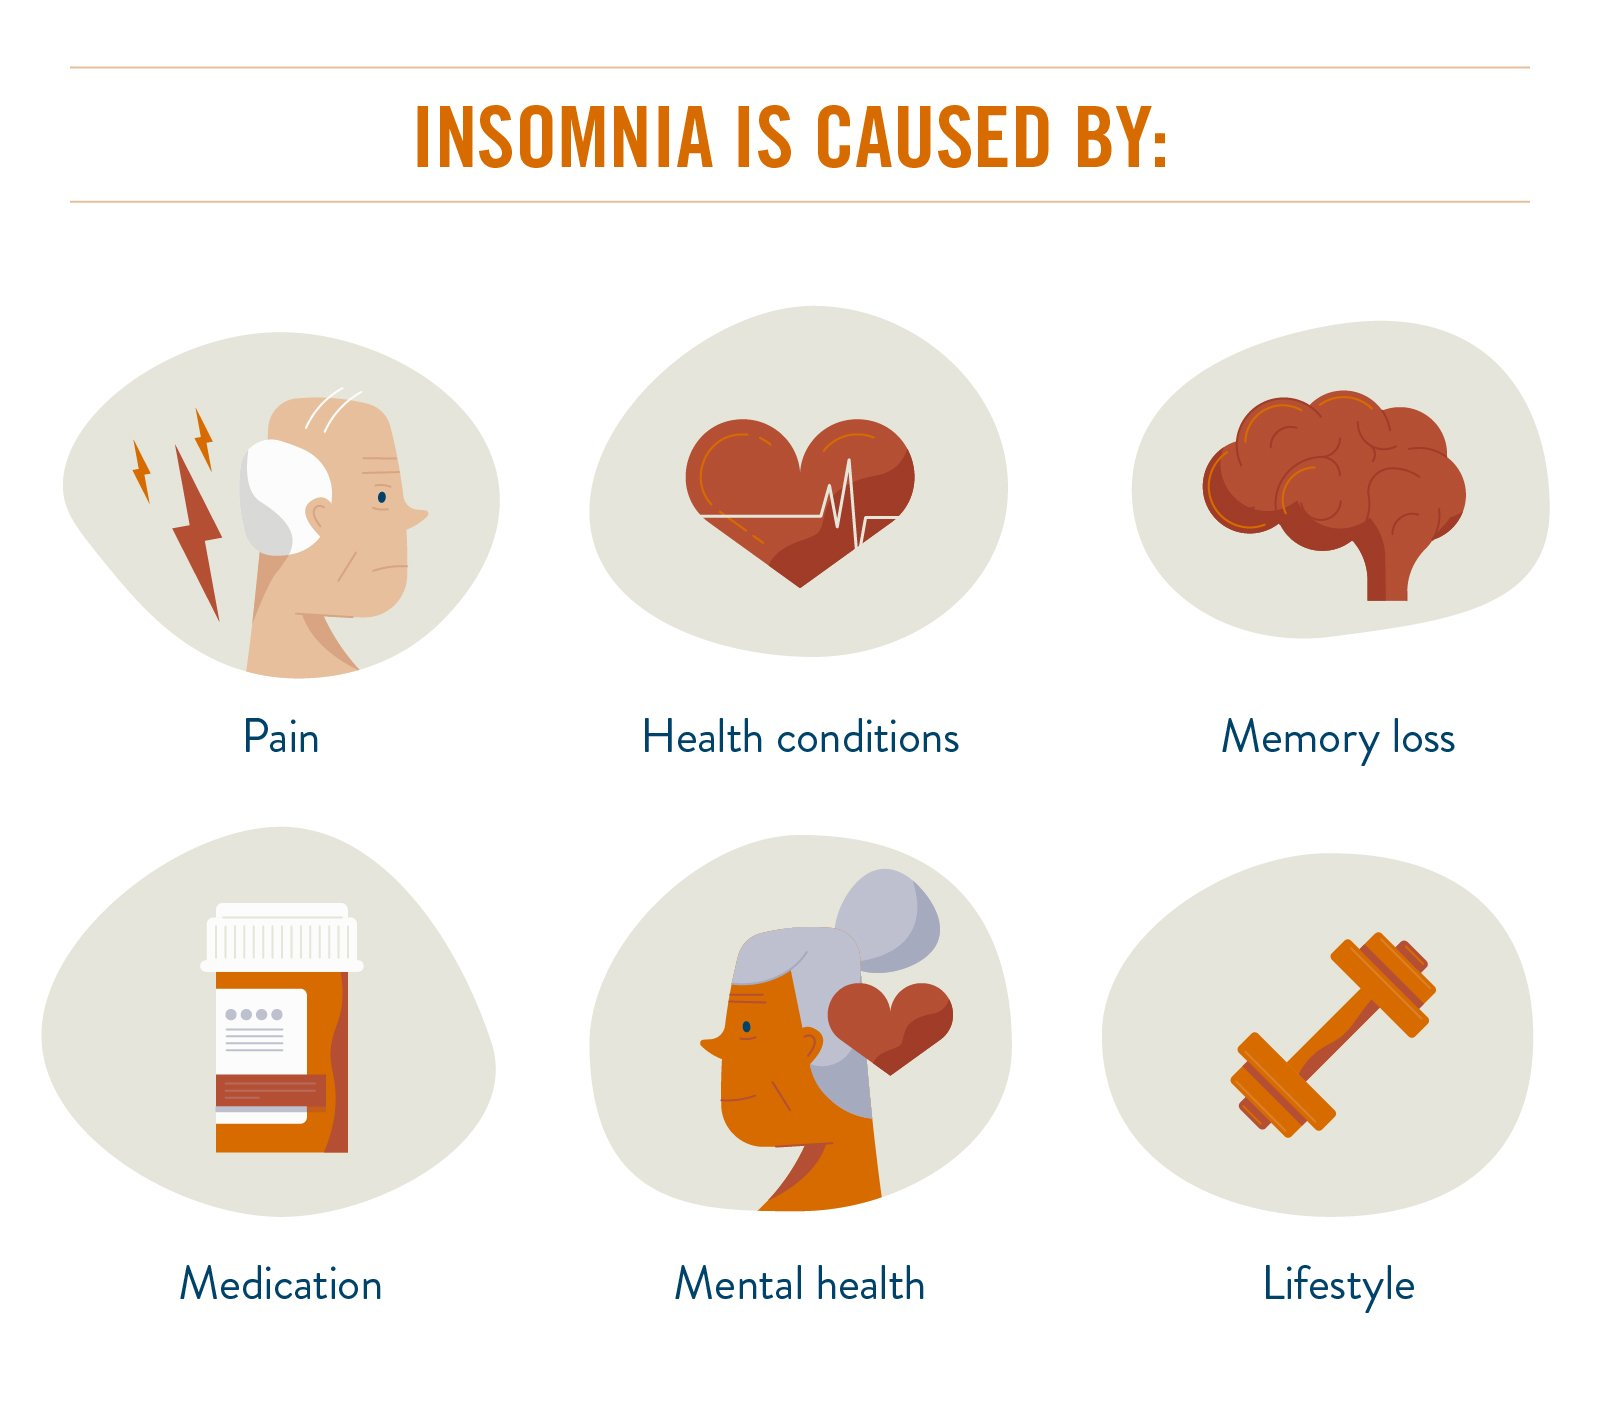 Insomnia is caused by2x